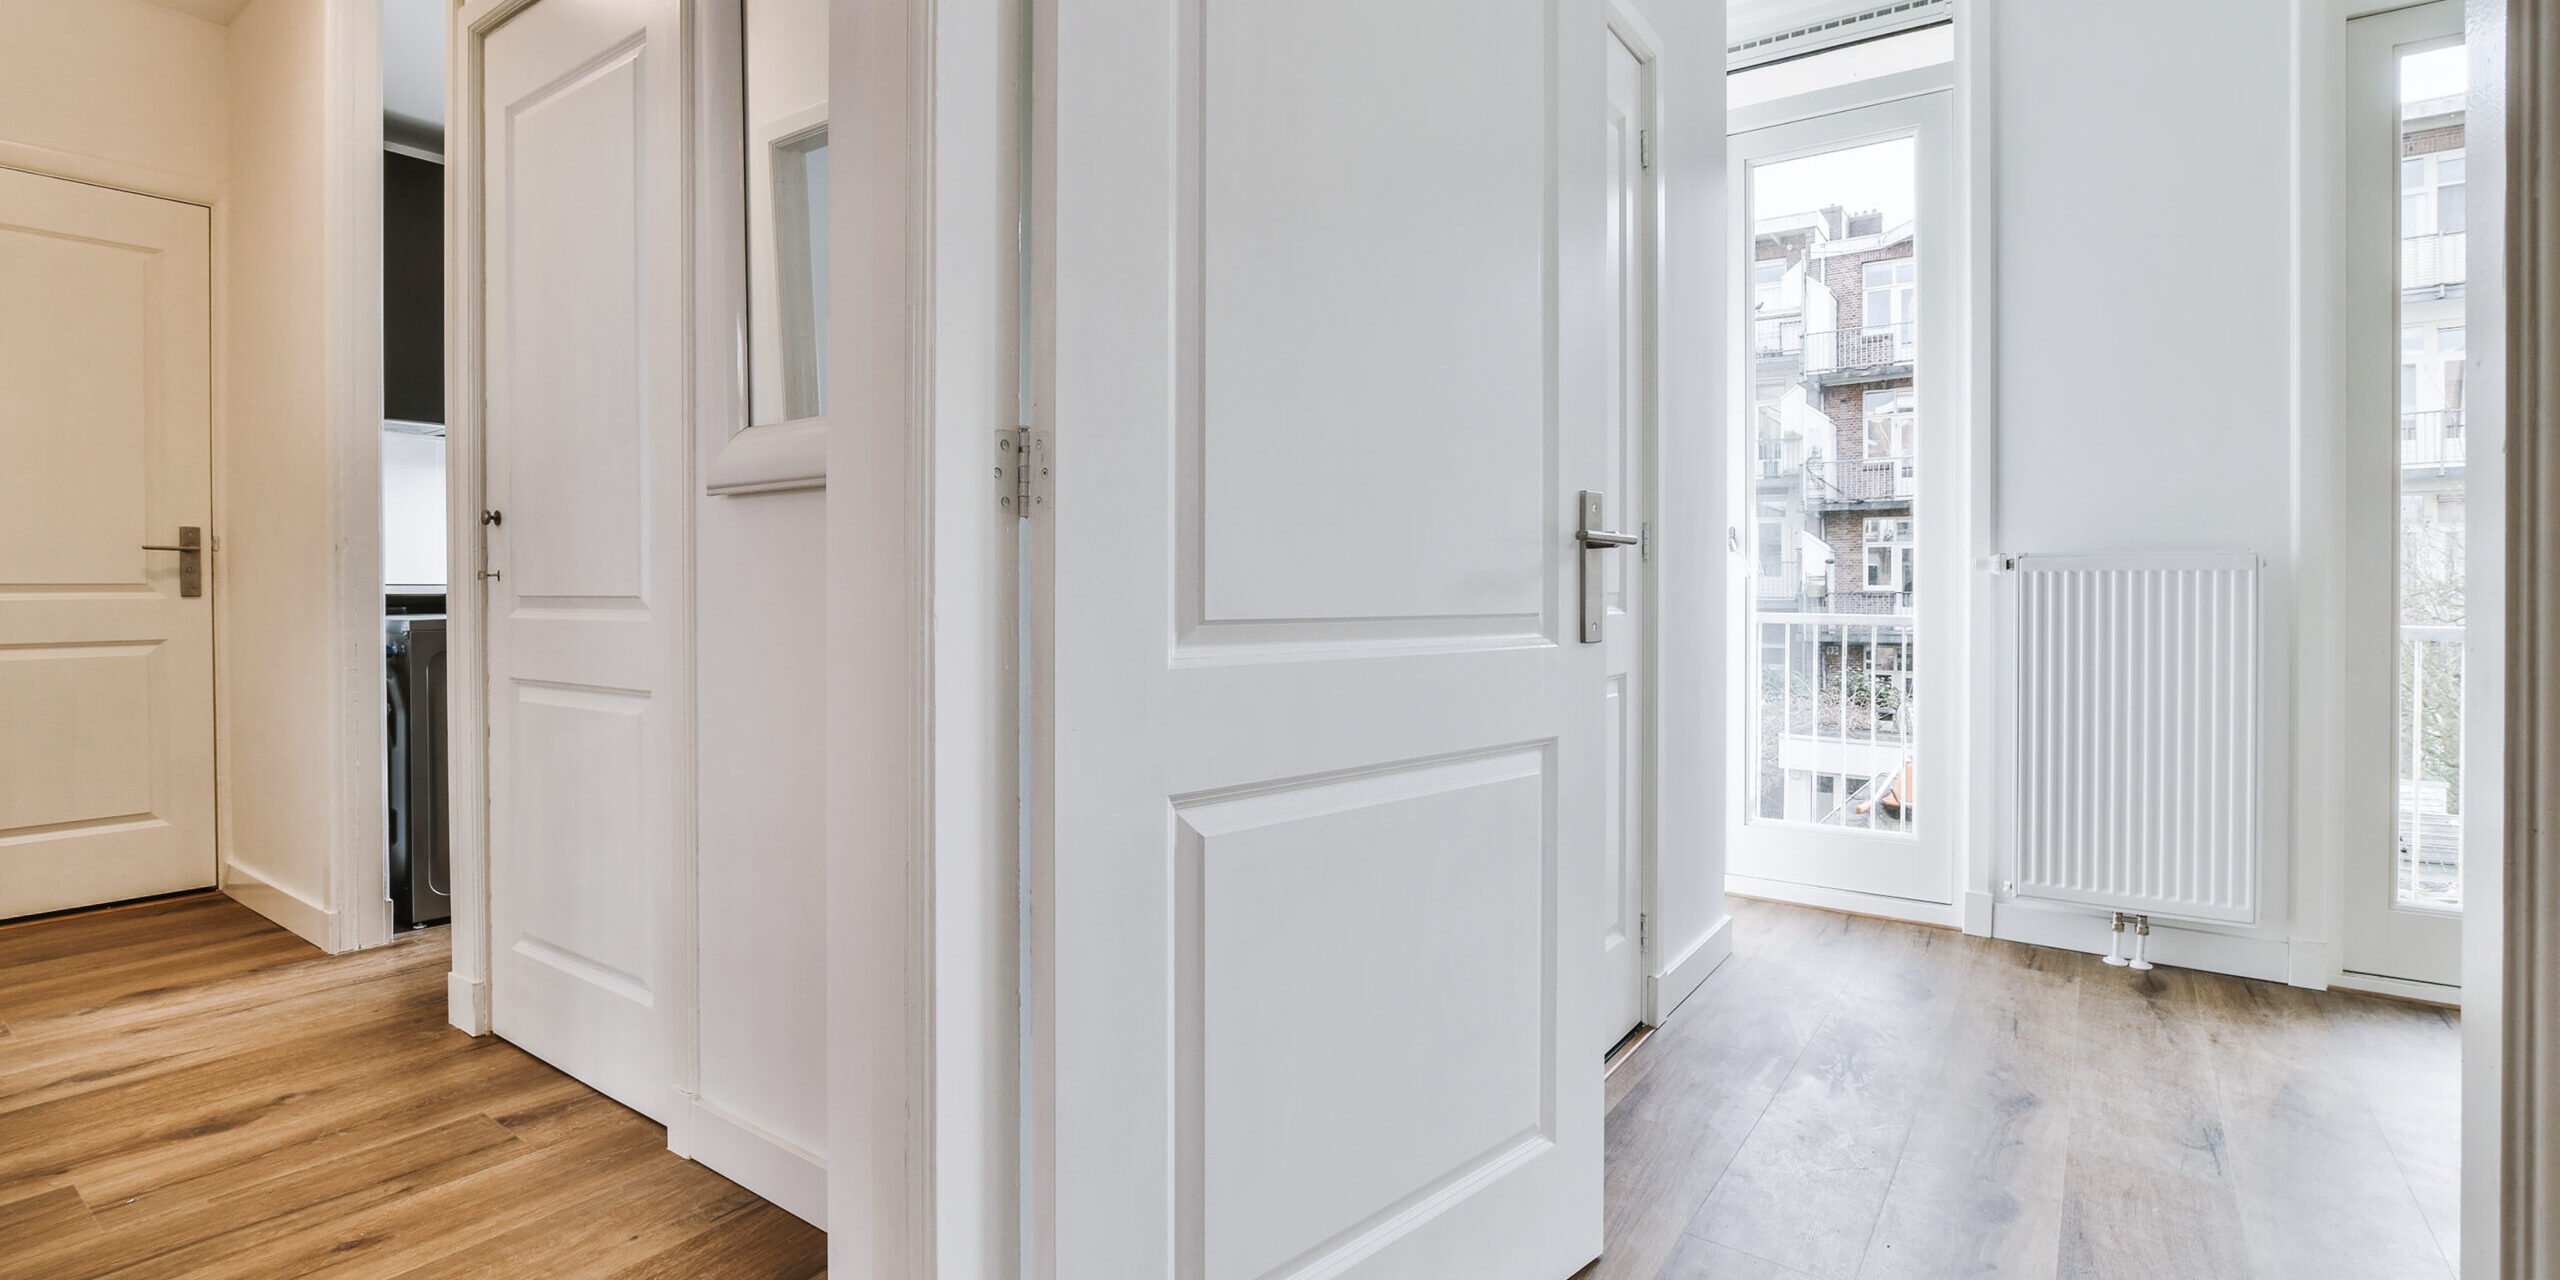 White door opened from corridor into empty room with radiator in modern apartment